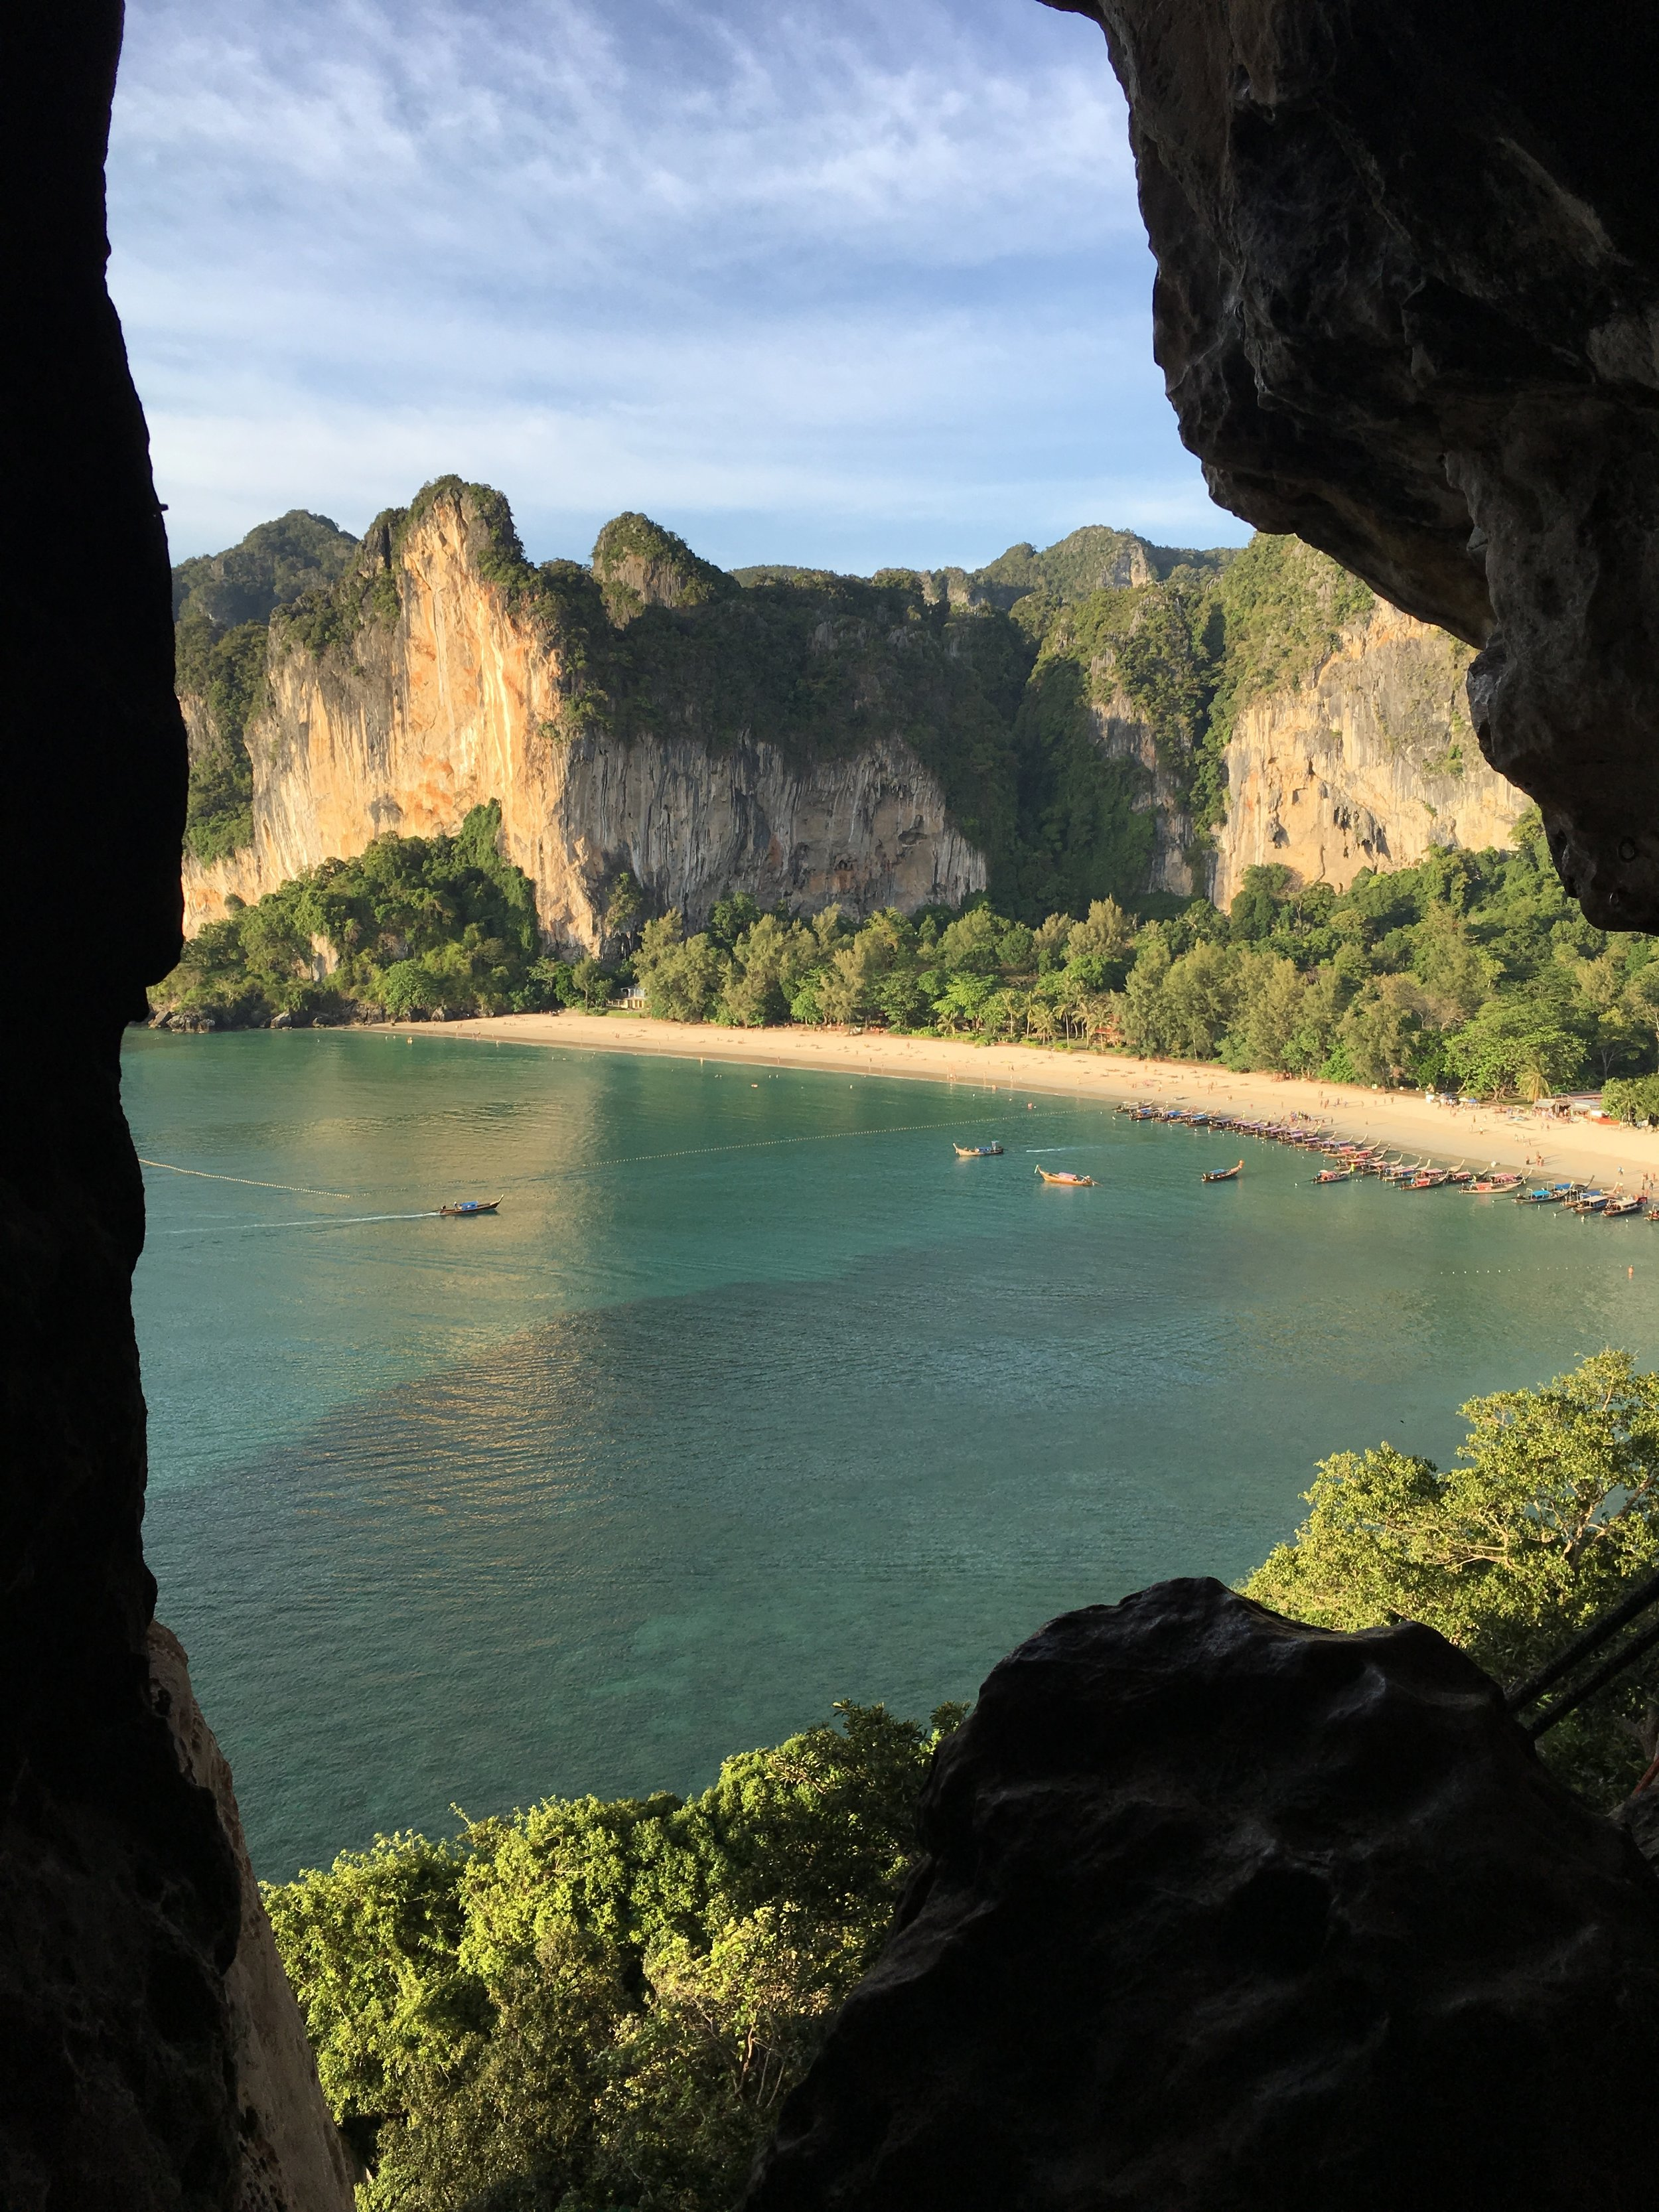 Railey Beach from Thaiwand Wall